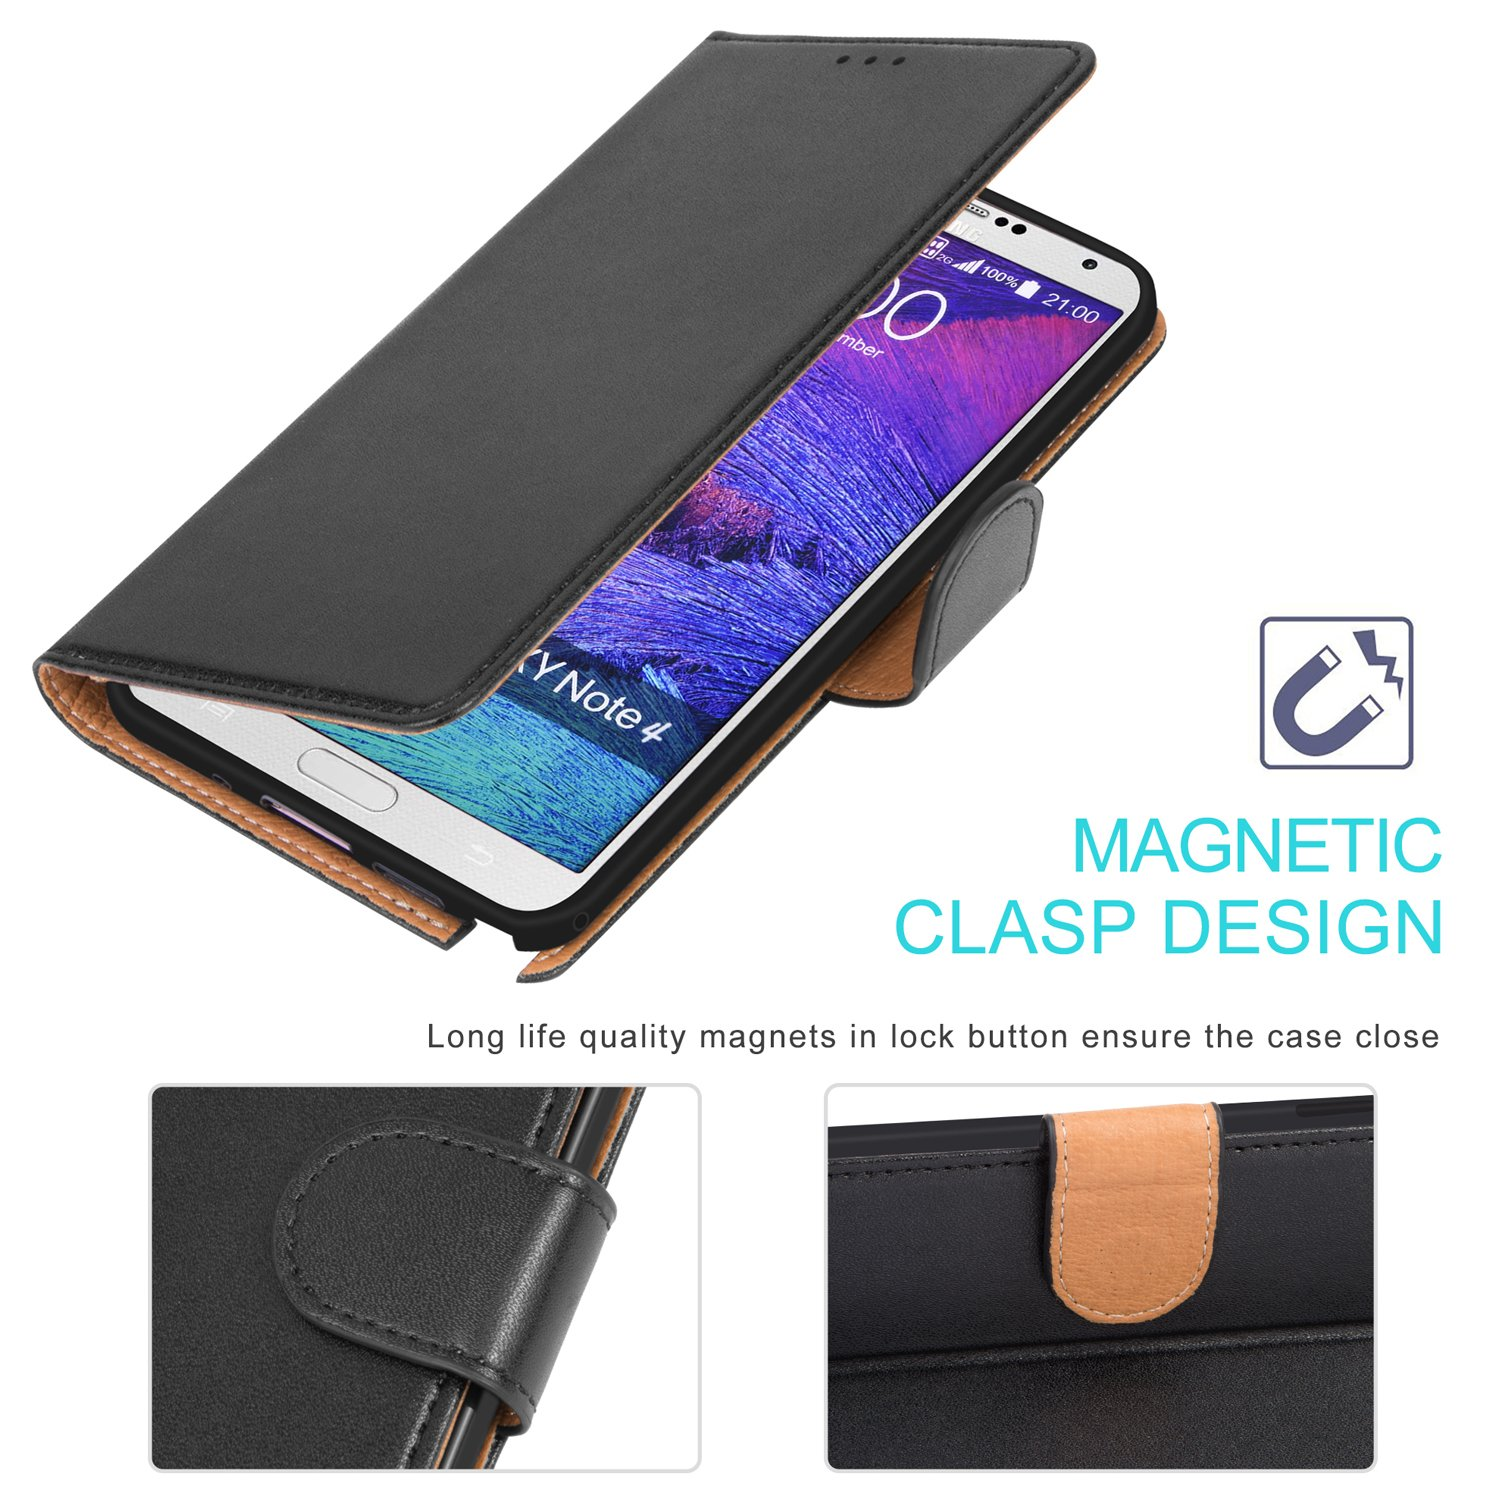 Aicoco Galaxy Note 4 Case Flip Cover Leather Wallet Goospery Samsung J3 2017 Pro Canvas Diary Orange Phone For Black Cell Phones Accessories